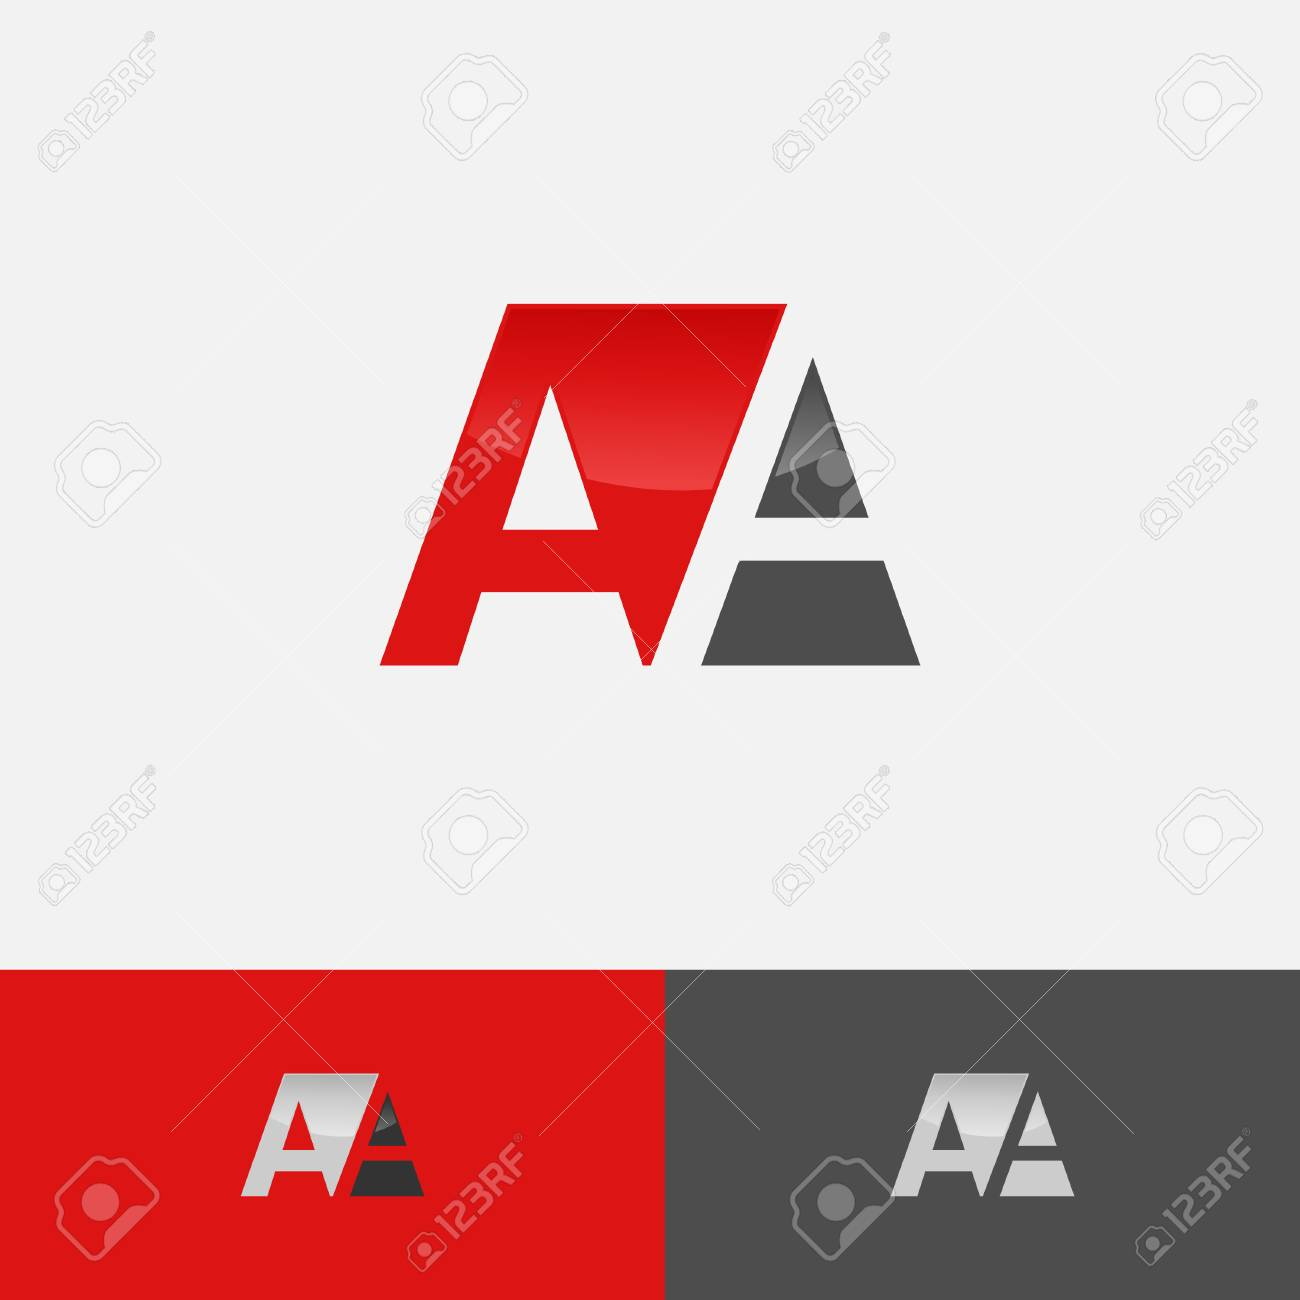 aA letter logo design negative space vector illustration template Stock  Vector - 109755959 39d74152f464